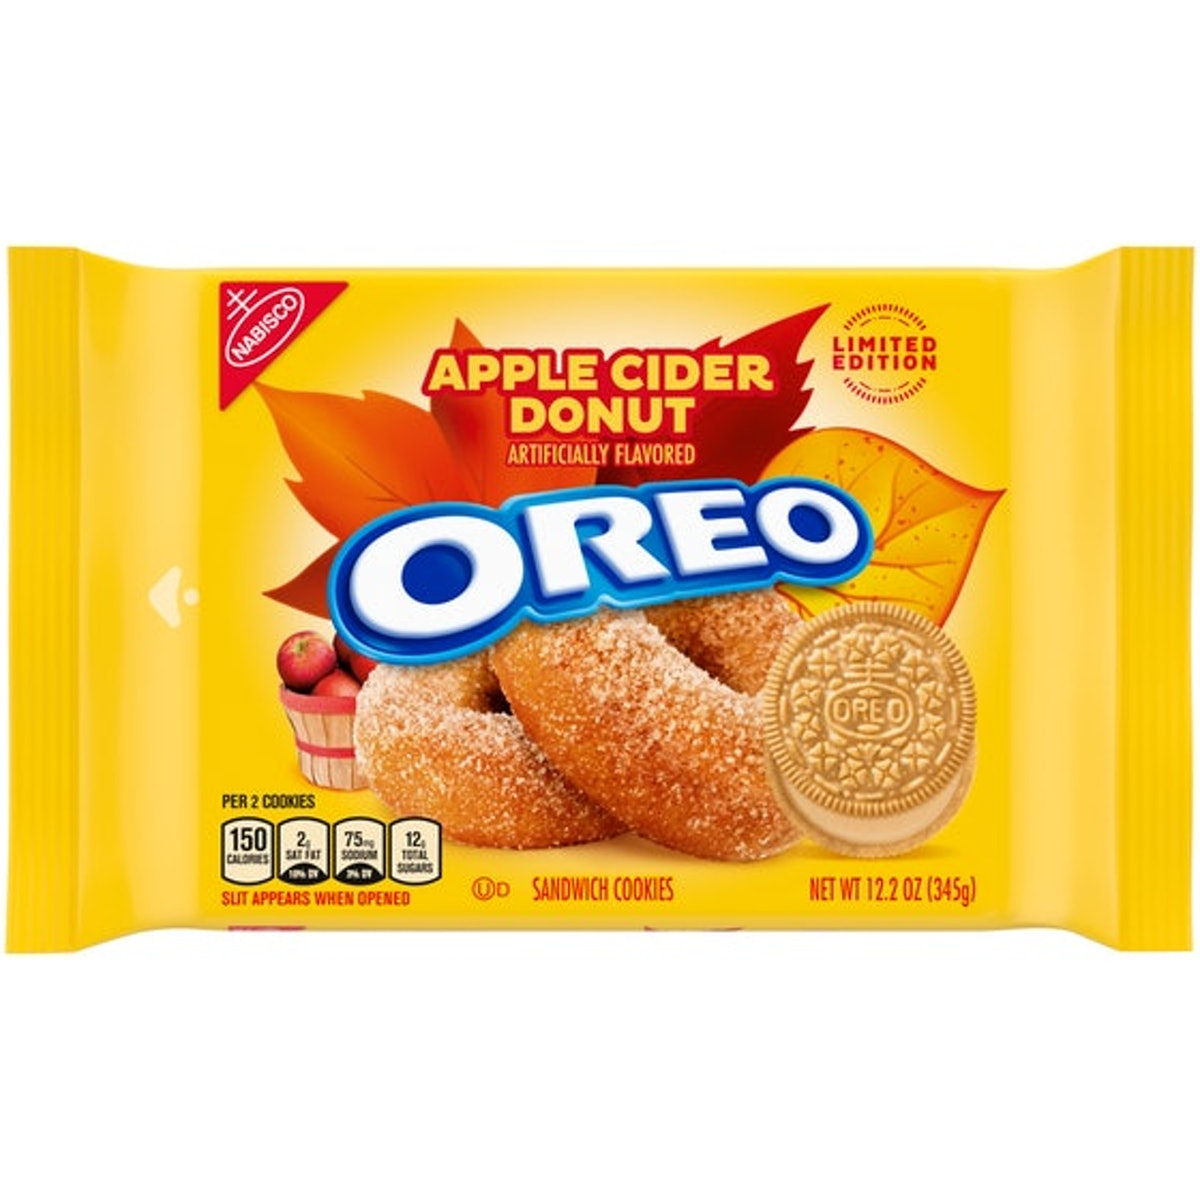 Here's what the Apple Cider Donut and Salted Caramel Brownie Oreo flavors taste like.